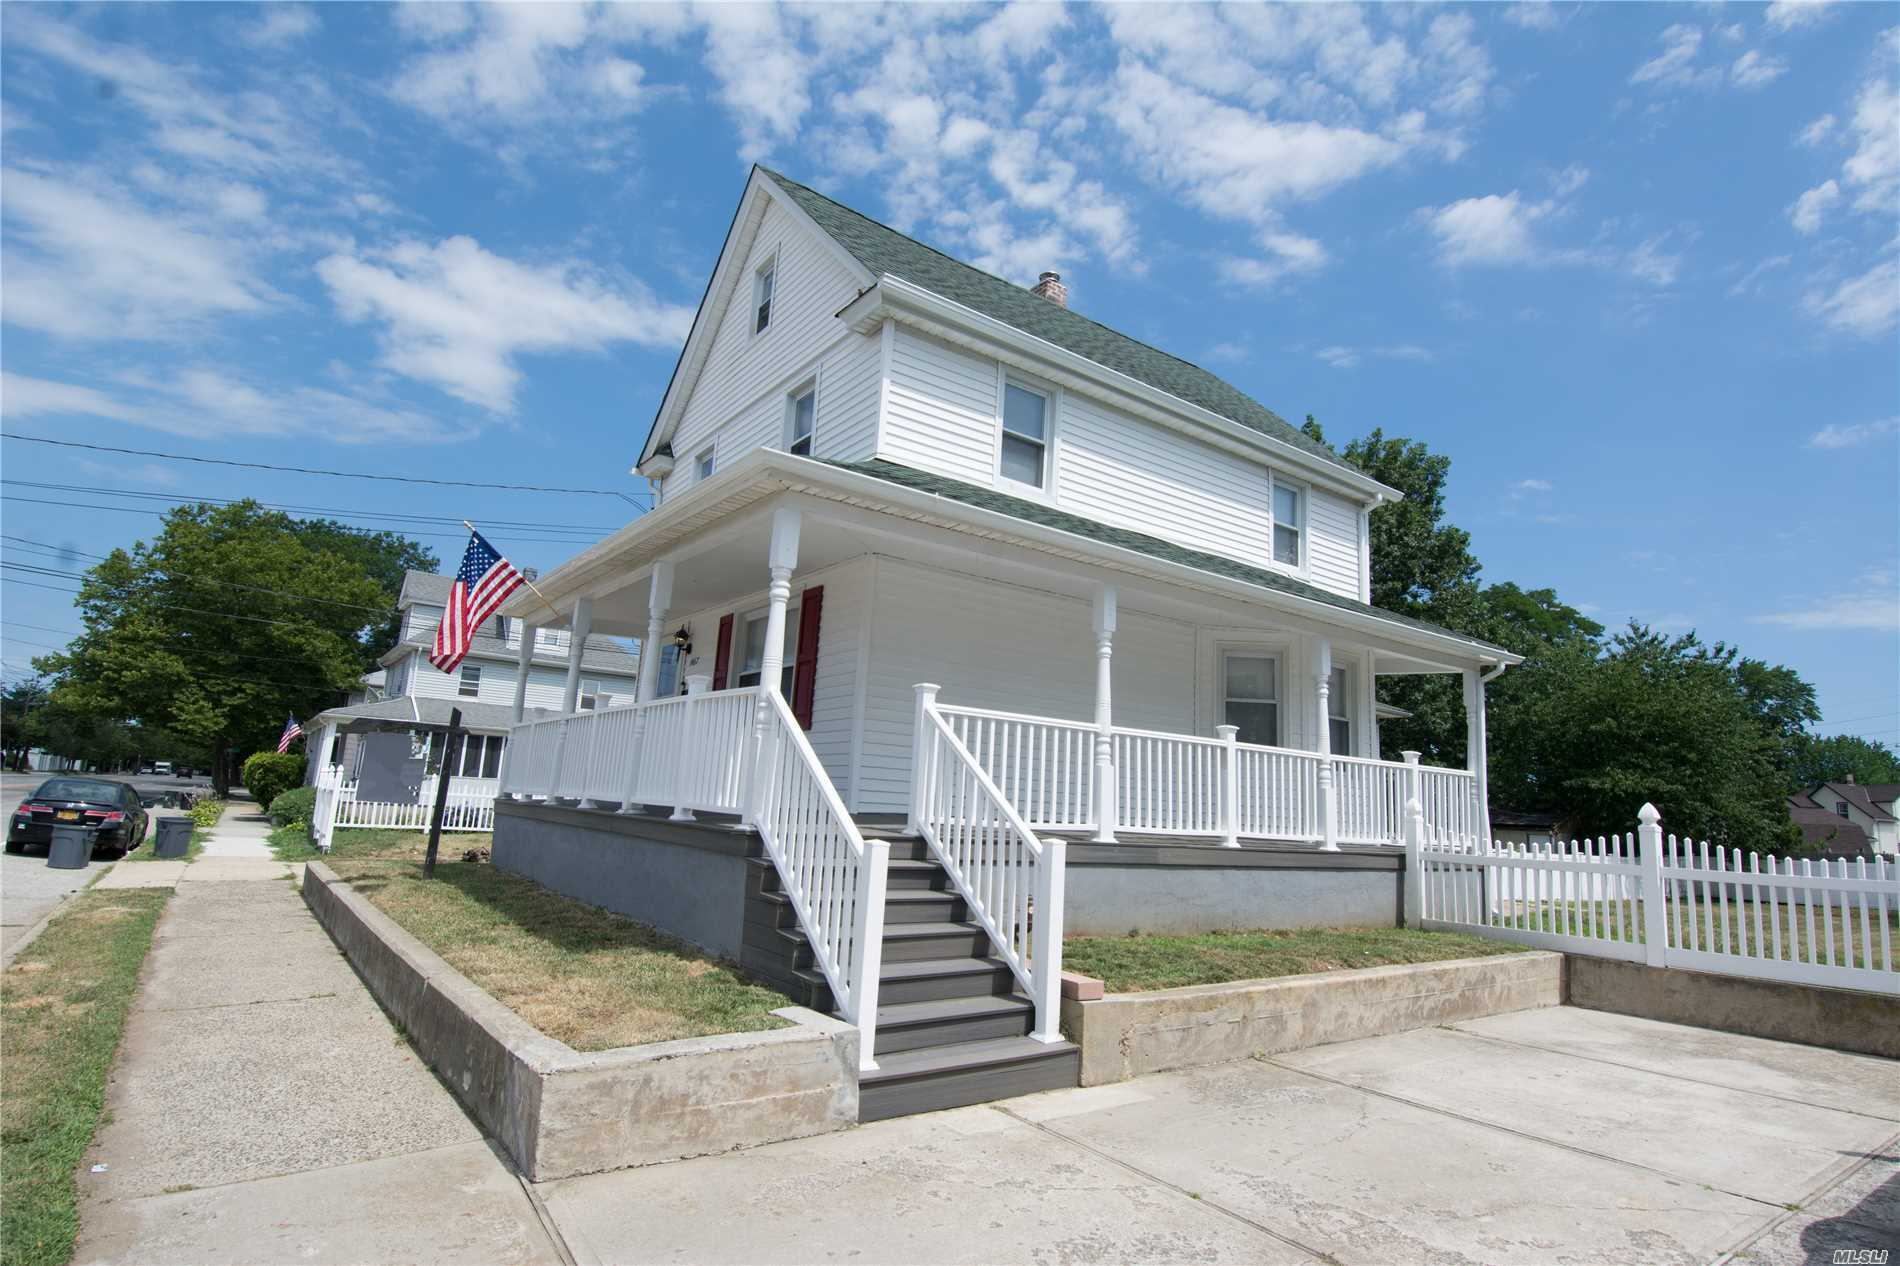 $2, 000 Credit To Buyer If In Contract By 8/31/18. Charming Vintage Colonial With Brand New Wrap-Around Porch On A 60X138 Lot Featuring Living Room, Formal Dining Room, Kitchen With New Appliances, Laundry Room/Mudroom Includes New Washer/Dryer On First Floor. Three Bedrooms And A Newly Updated Full Bath On Second Floor. Walk-Up Finished Granny Attic. Pvc Fenced-In Huge Backyard With Large Shed. One Year Old Roof. 200 Amp. Turn Key Home In An Award Winning School District. Low Taxes. A Must See!